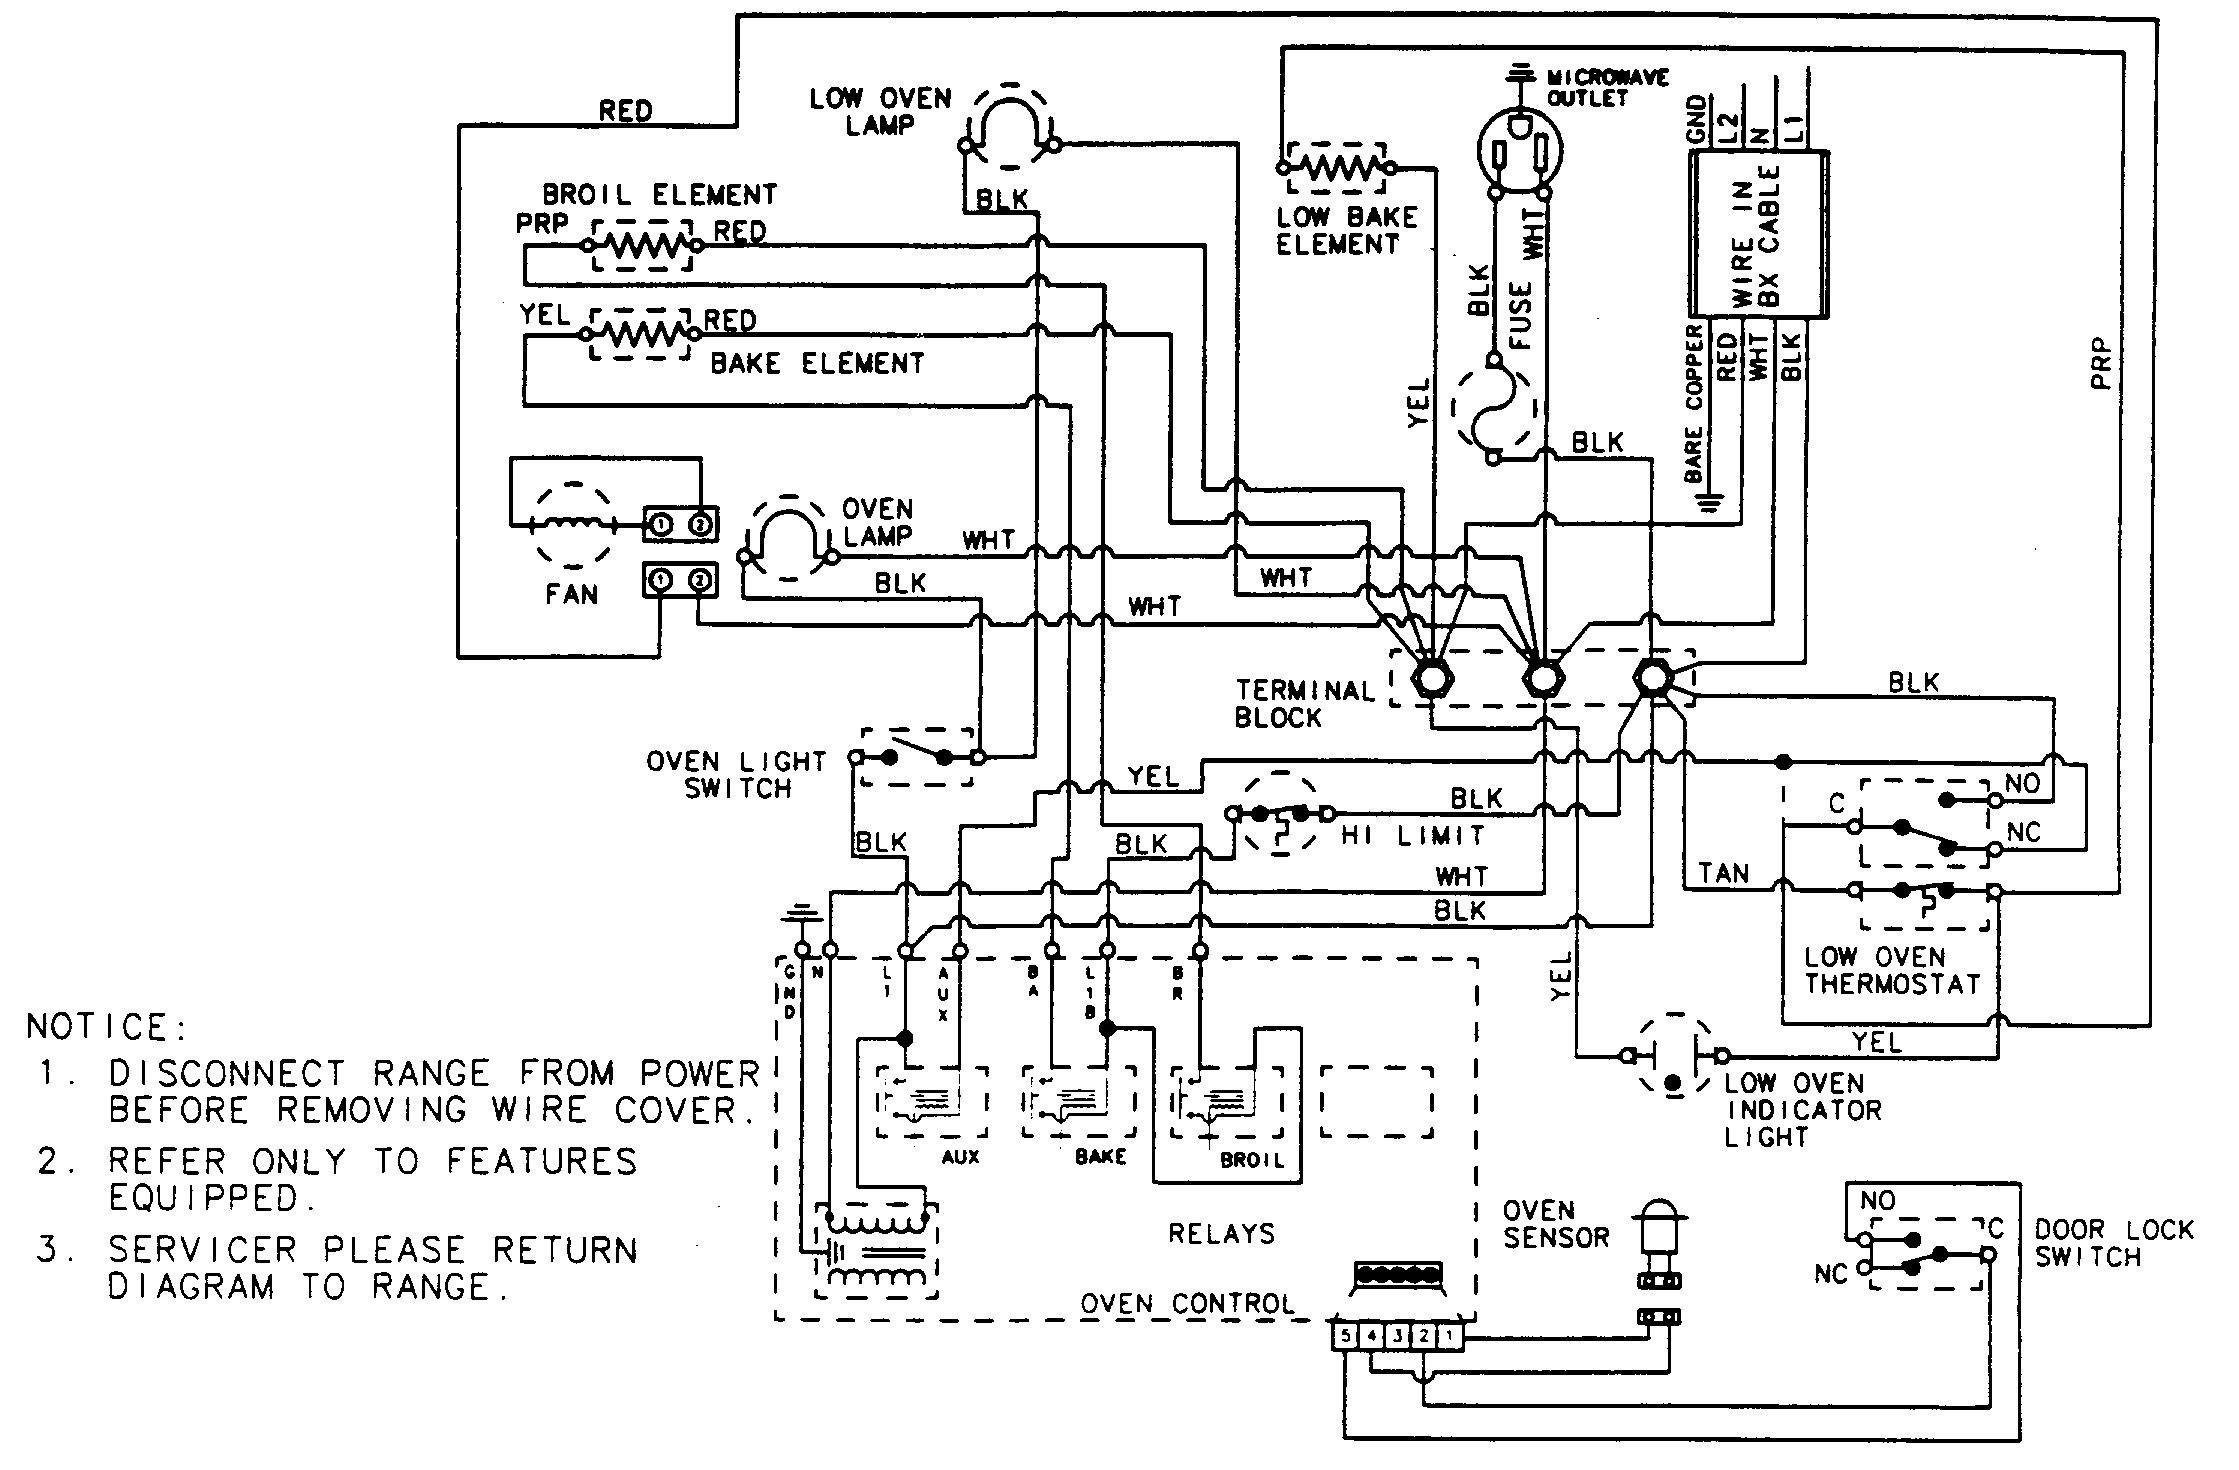 wiring diagram for ge electric range electronic schematics collections GE Appliance Wiring Diagrams ge stove top wiring diagram 18 frv capecoral bootsvermietung de \\u2022ge stove diagram 19 18